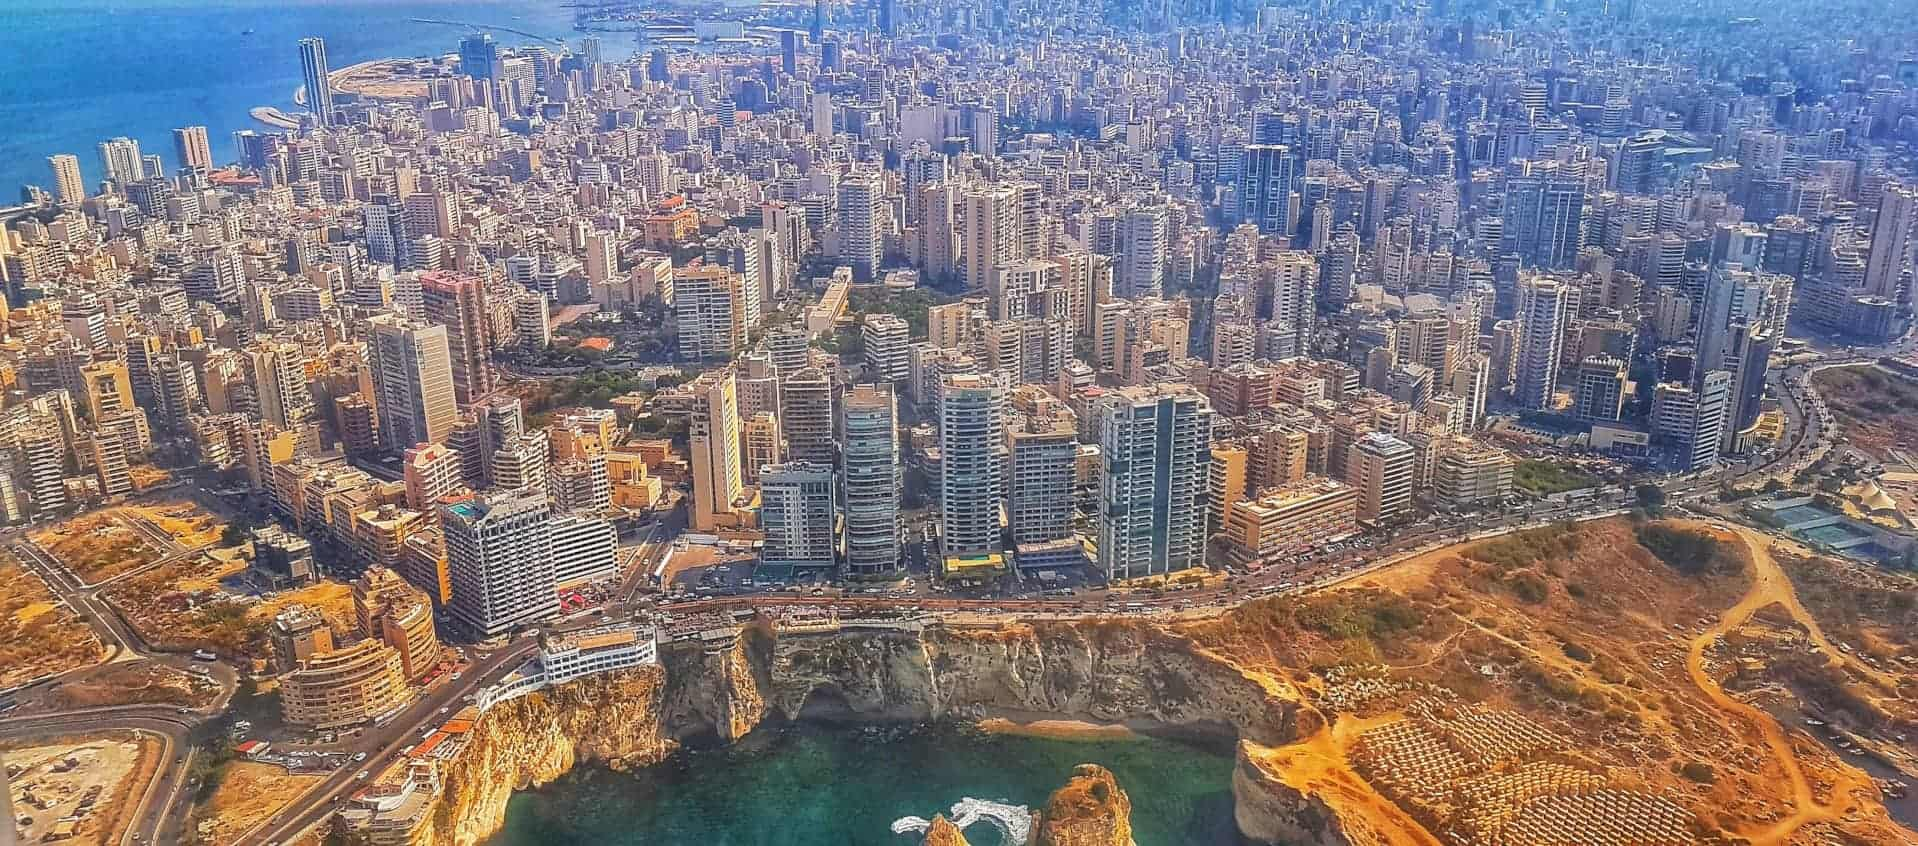 Lebanon Reinstates Lockdown After Spike in Cases